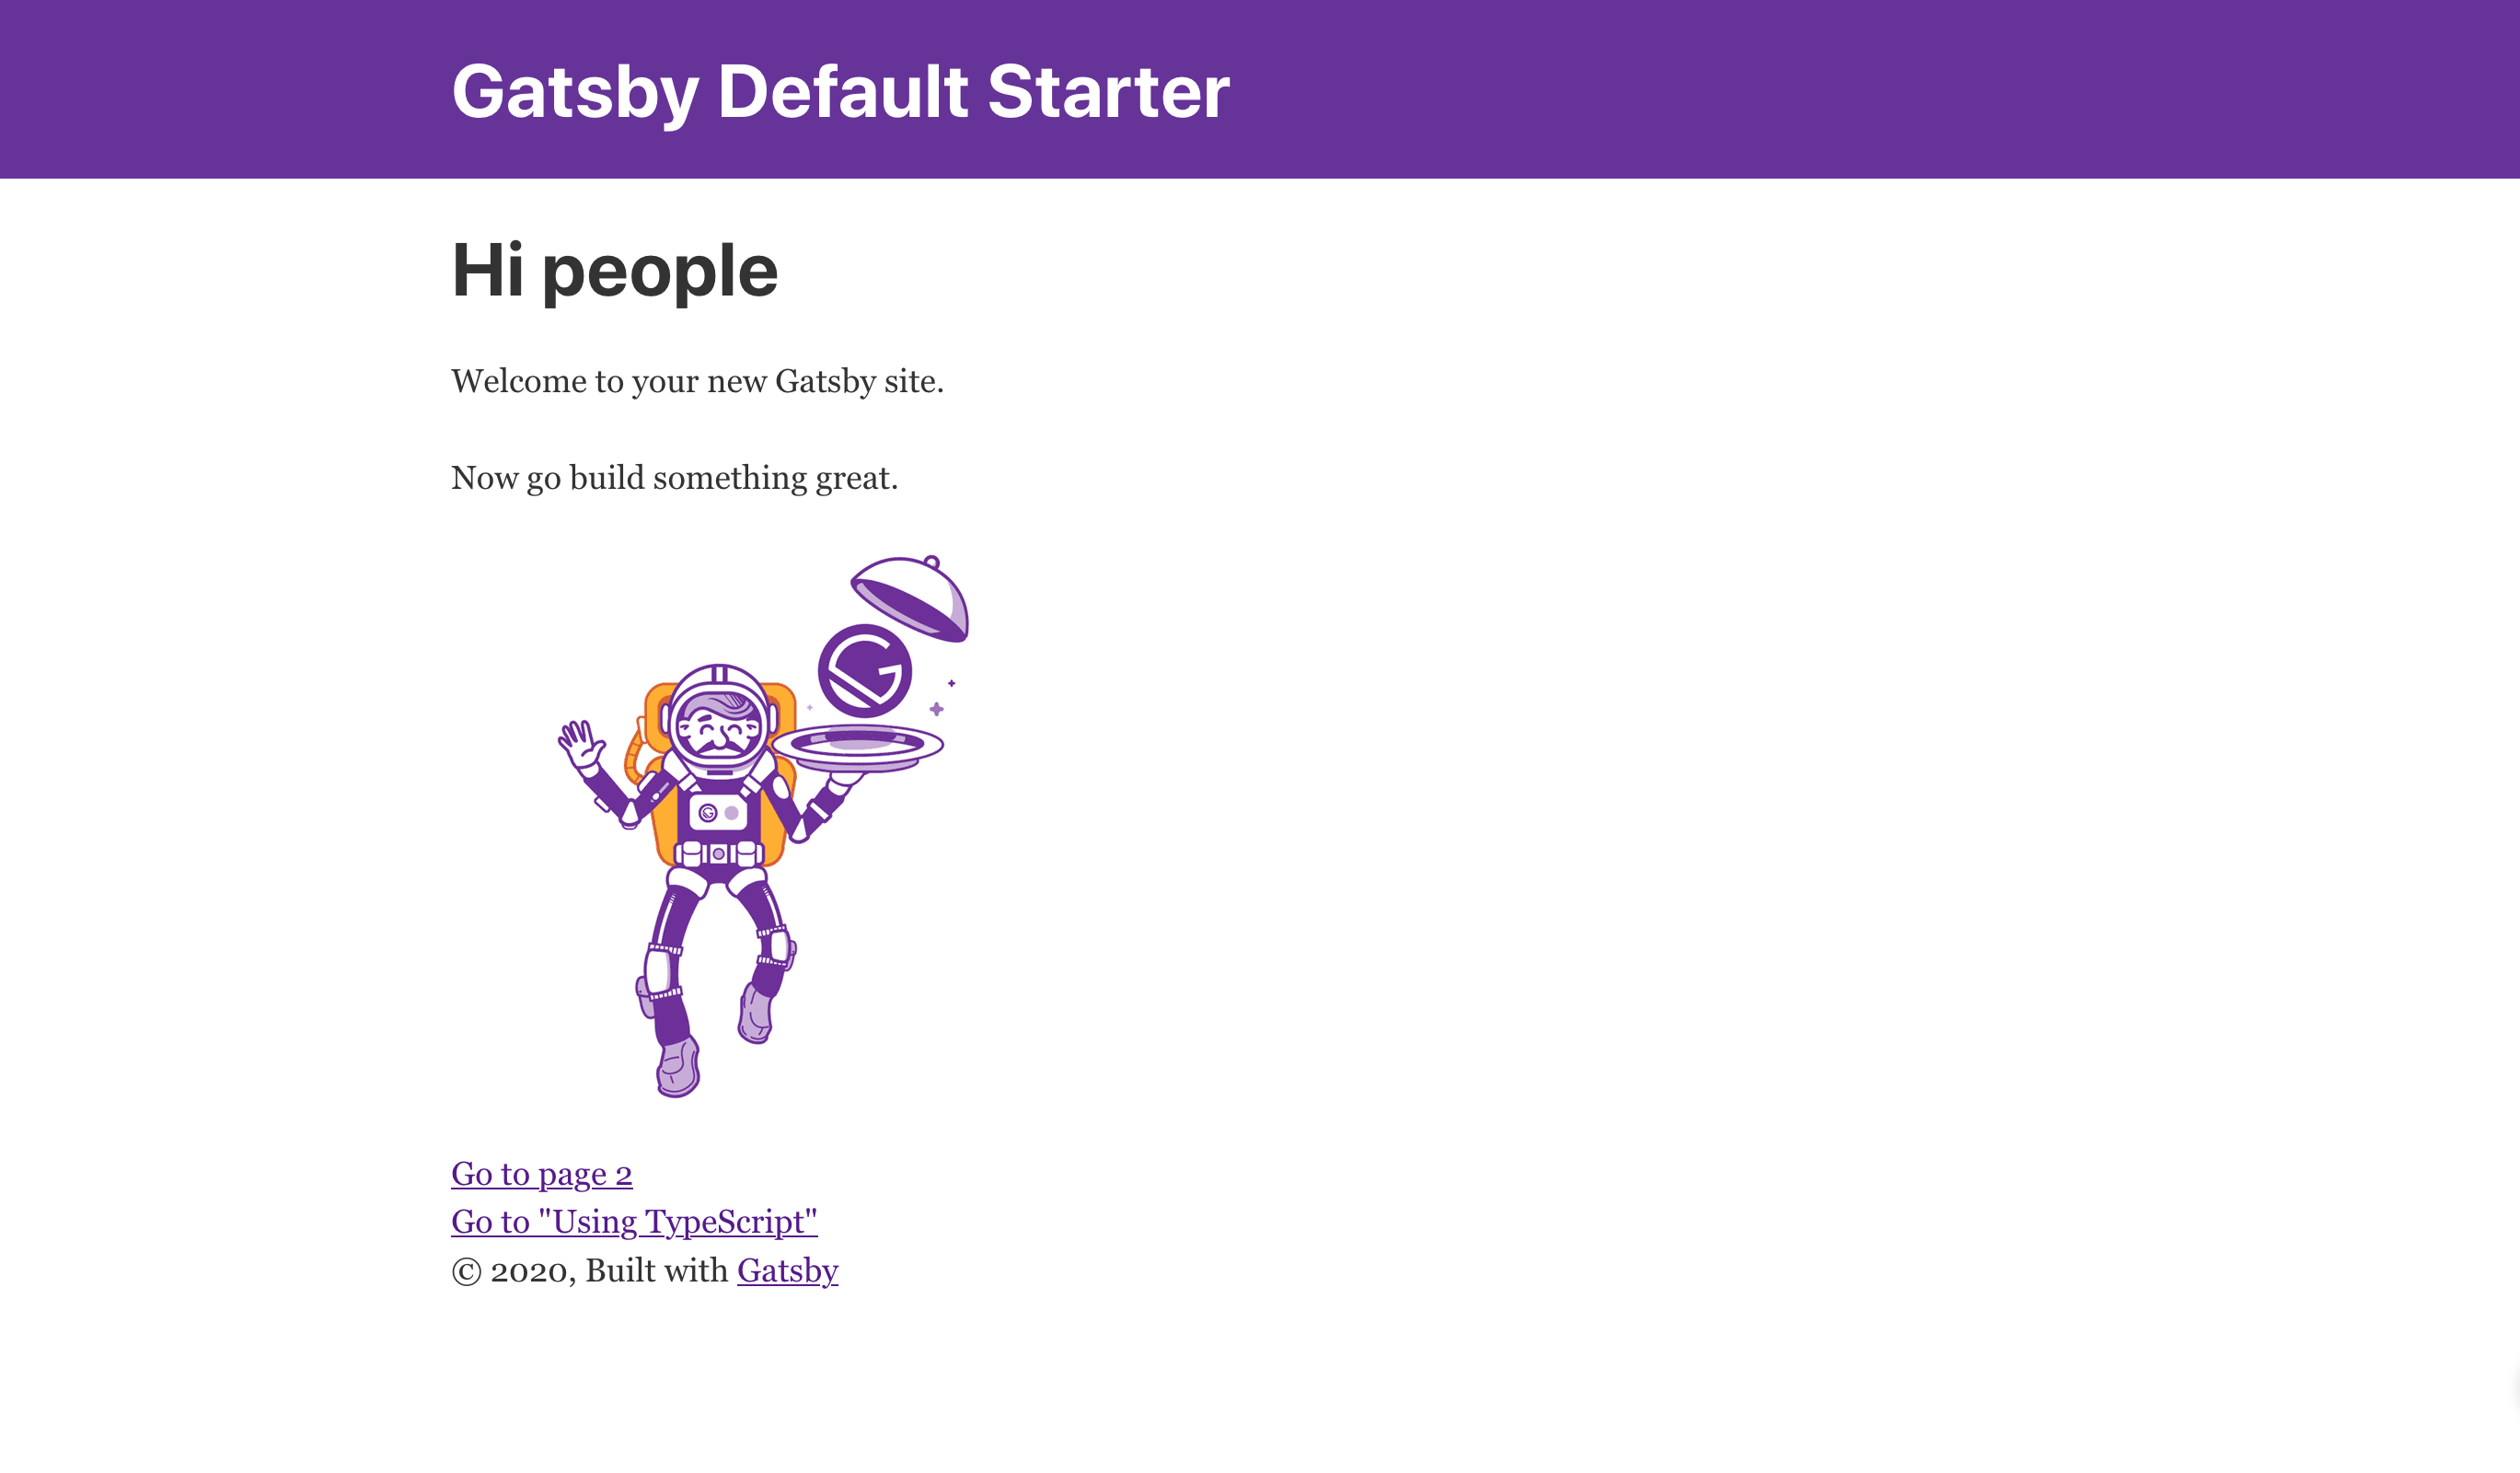 This is an image of the Gatsby homepage